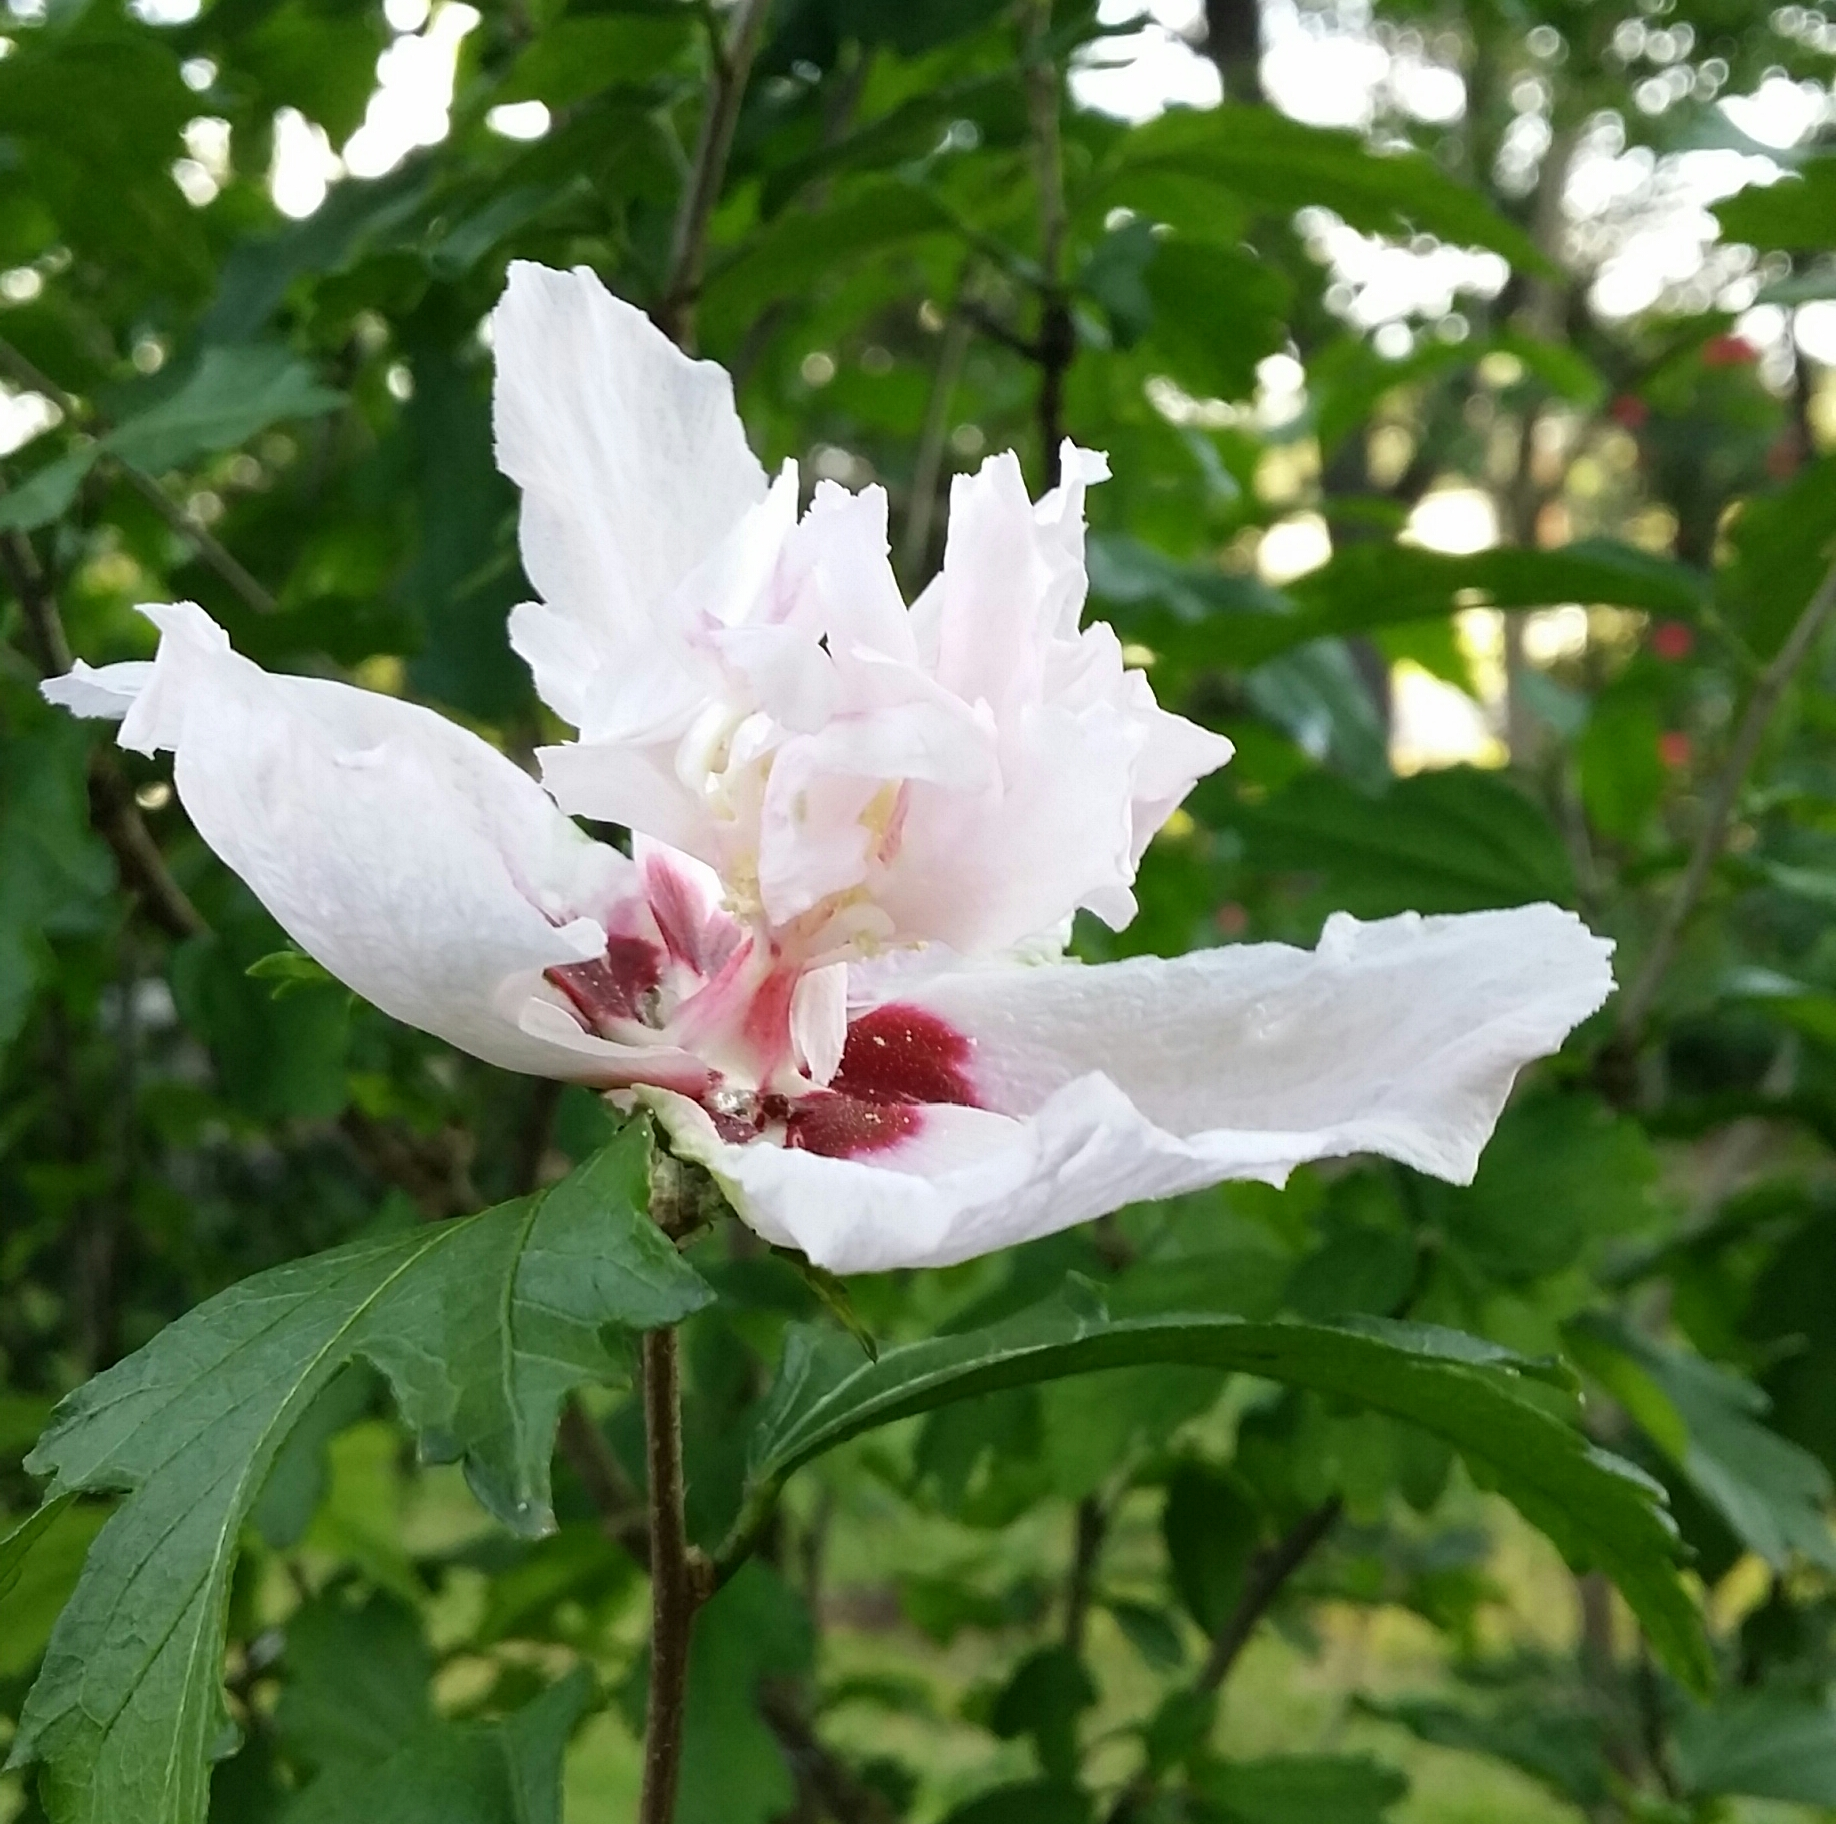 White With Red Center Double Rose of Sharon